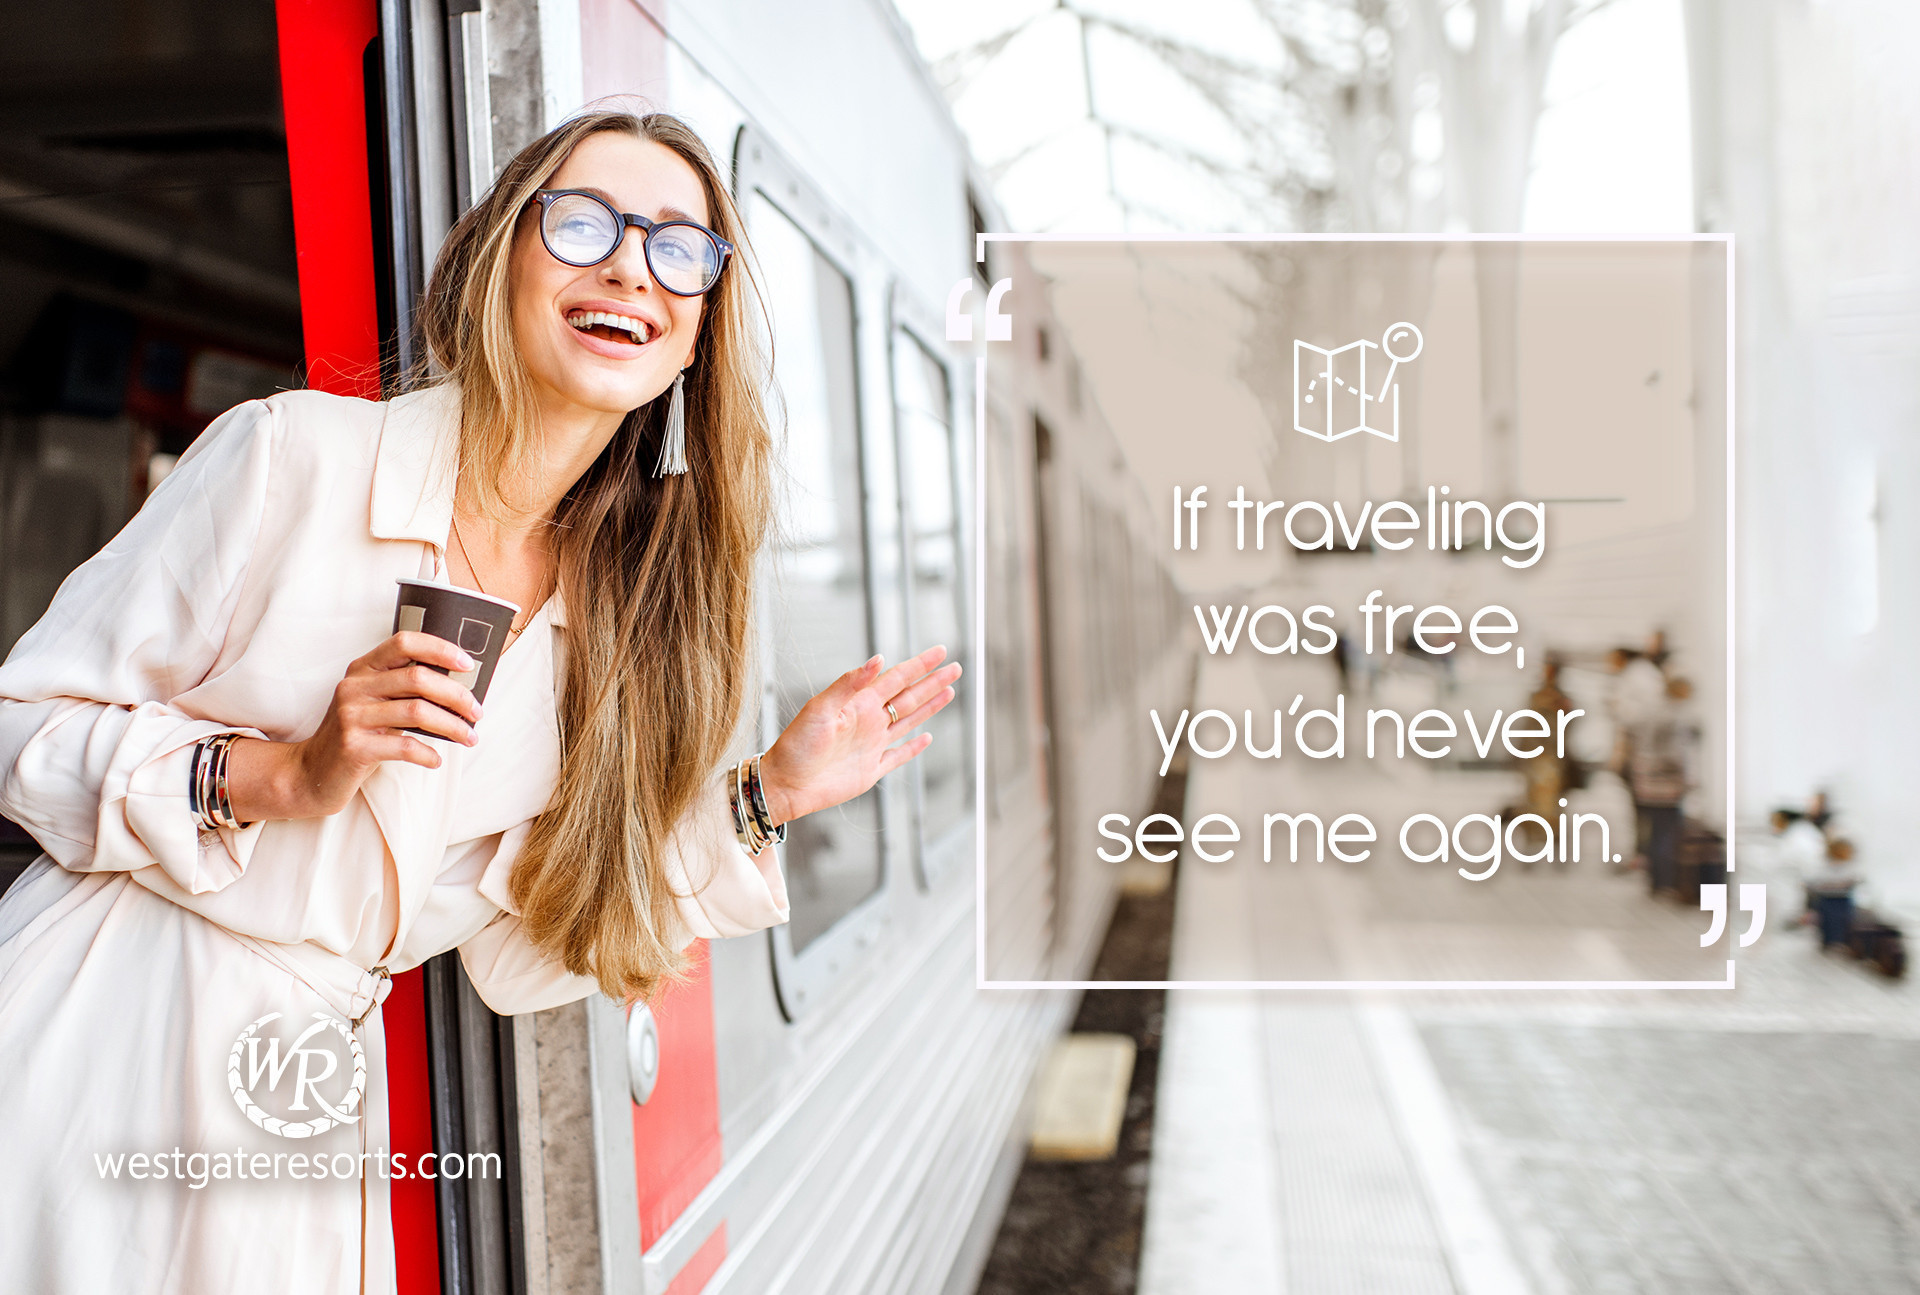 If Traveling Was Free, You'd Never See Me Again. | Travel Motivational Quotes | Quotes About Travel